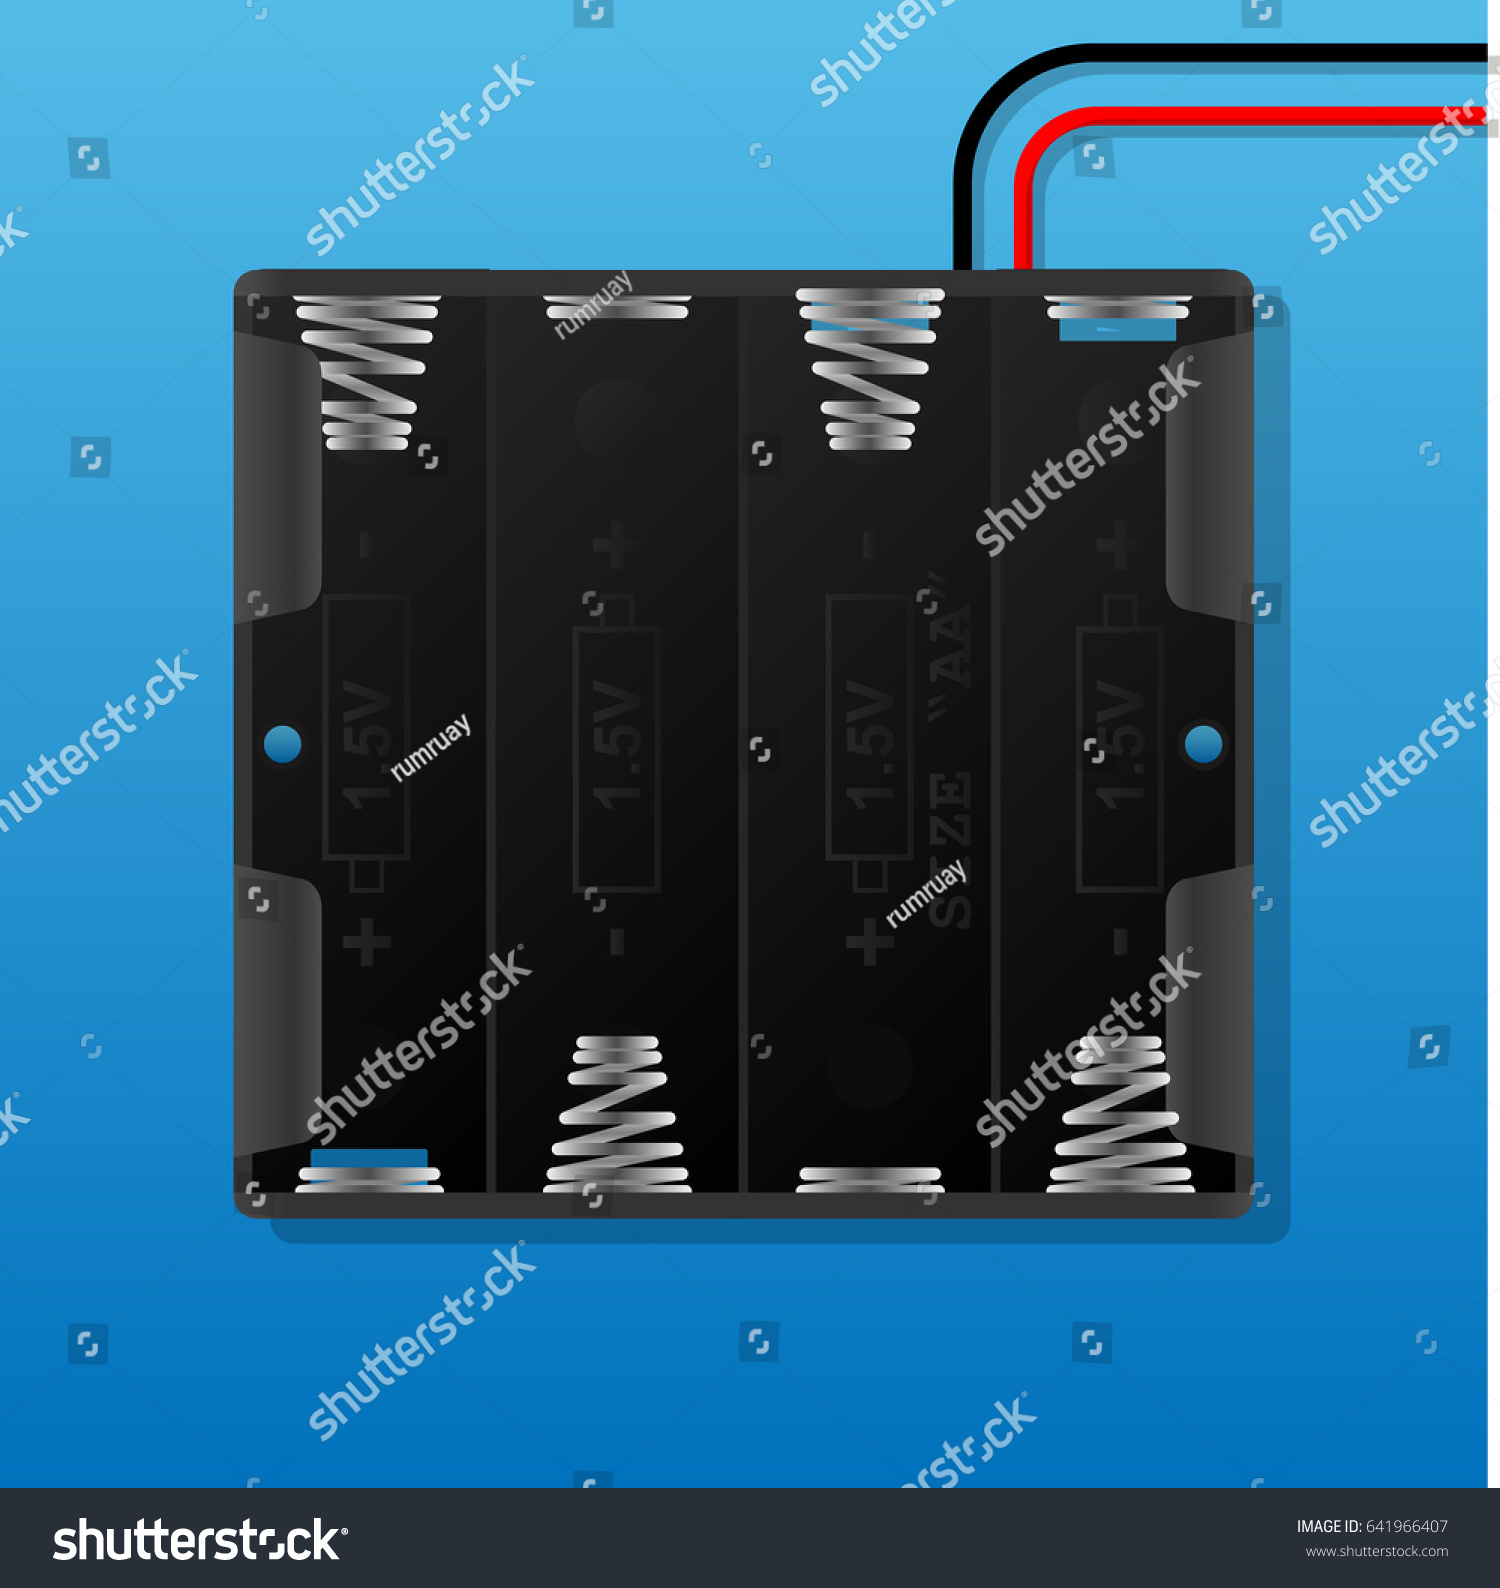 Aaa Battery Holder Wiring Stock Vector Royalty Free 641966407 Series Parallel Pack With